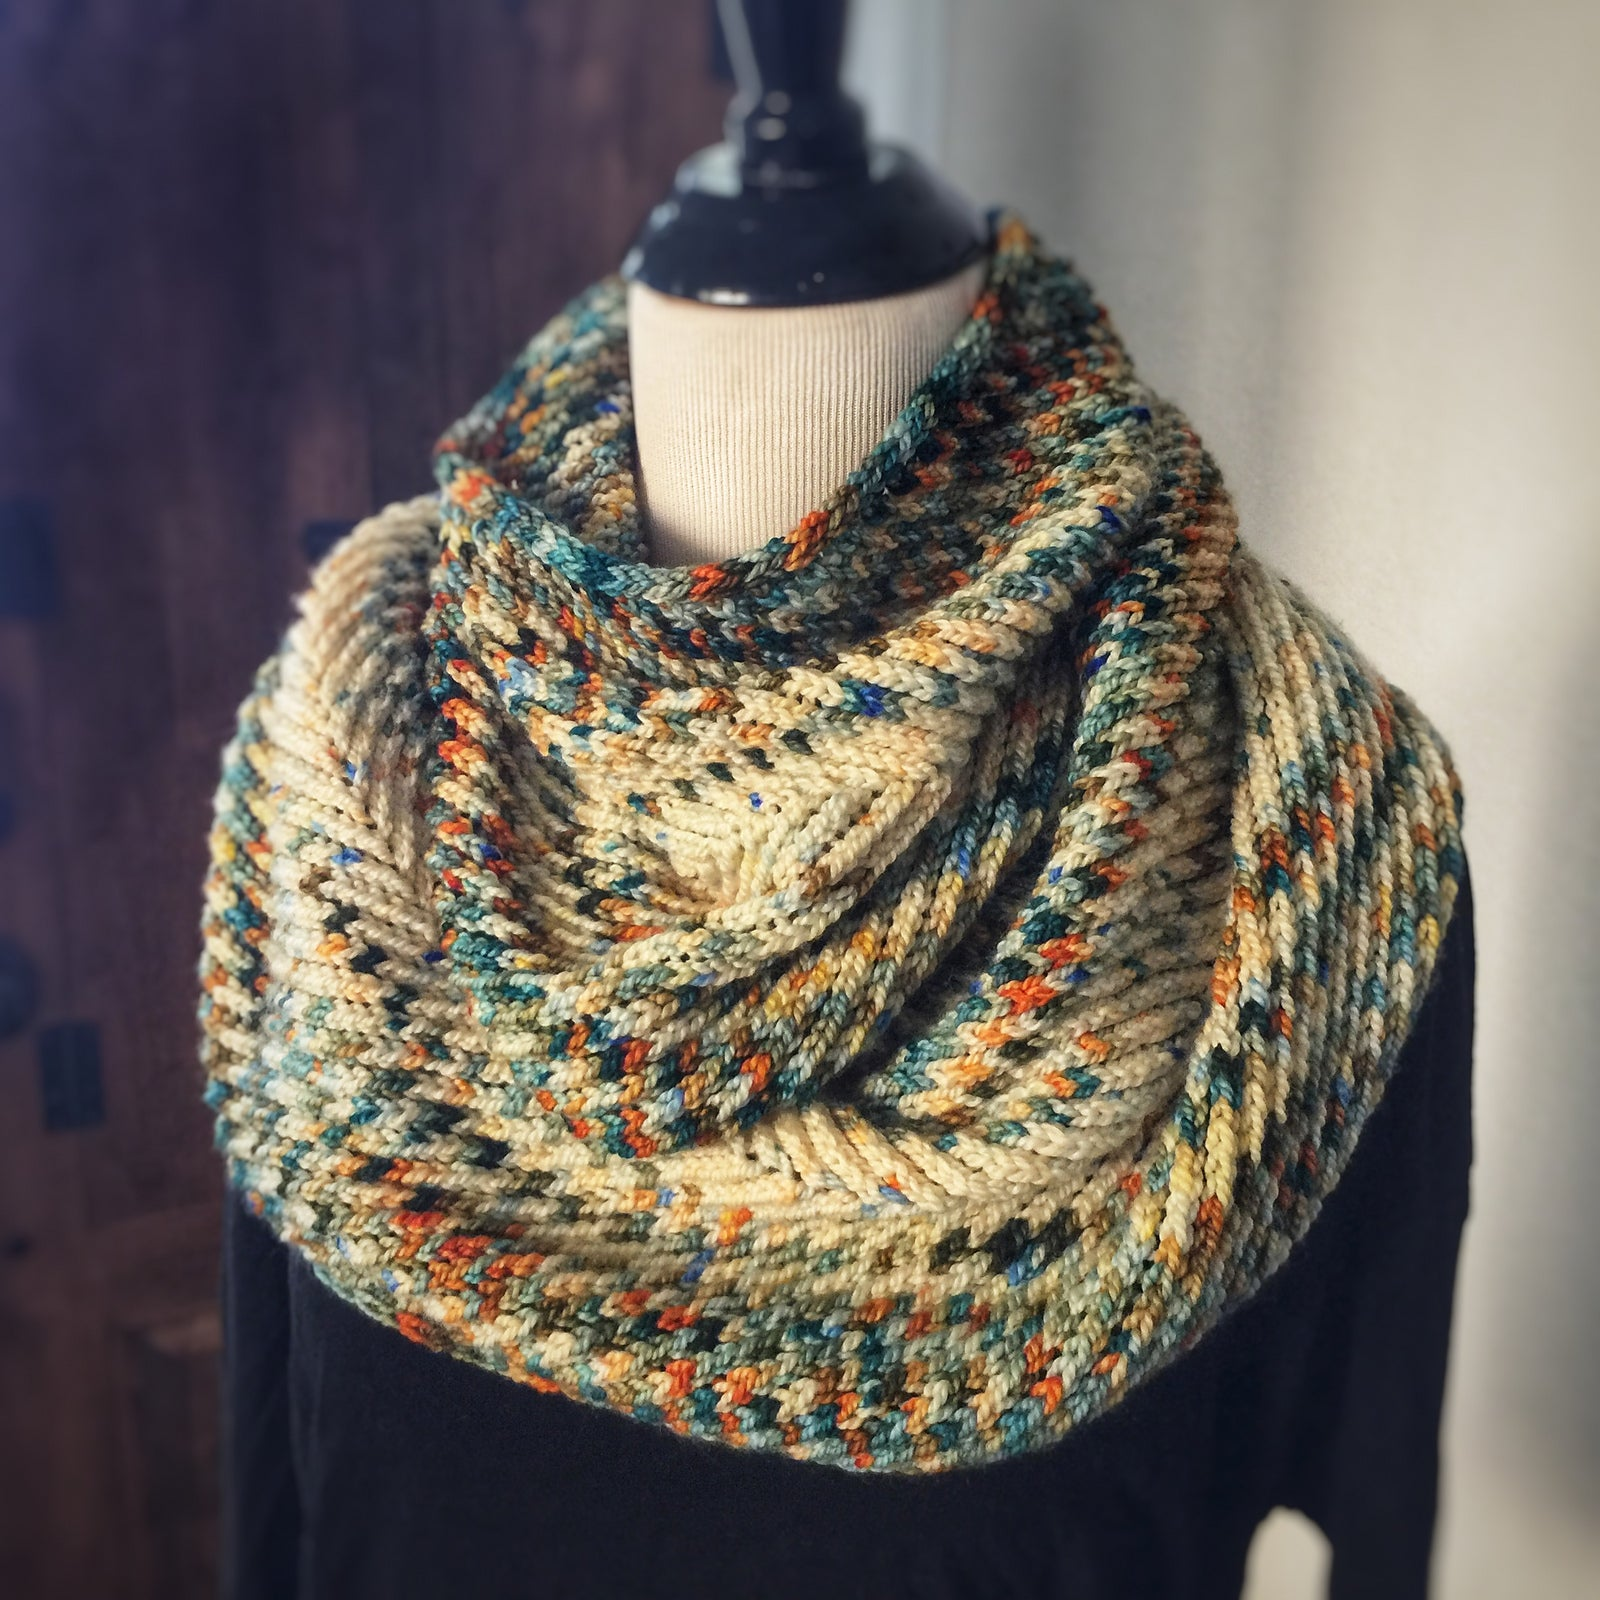 Strolling on Cloud 9 Cowl Kit & Knit a Long (PREORDER) & Tutorial Videos (option to add)